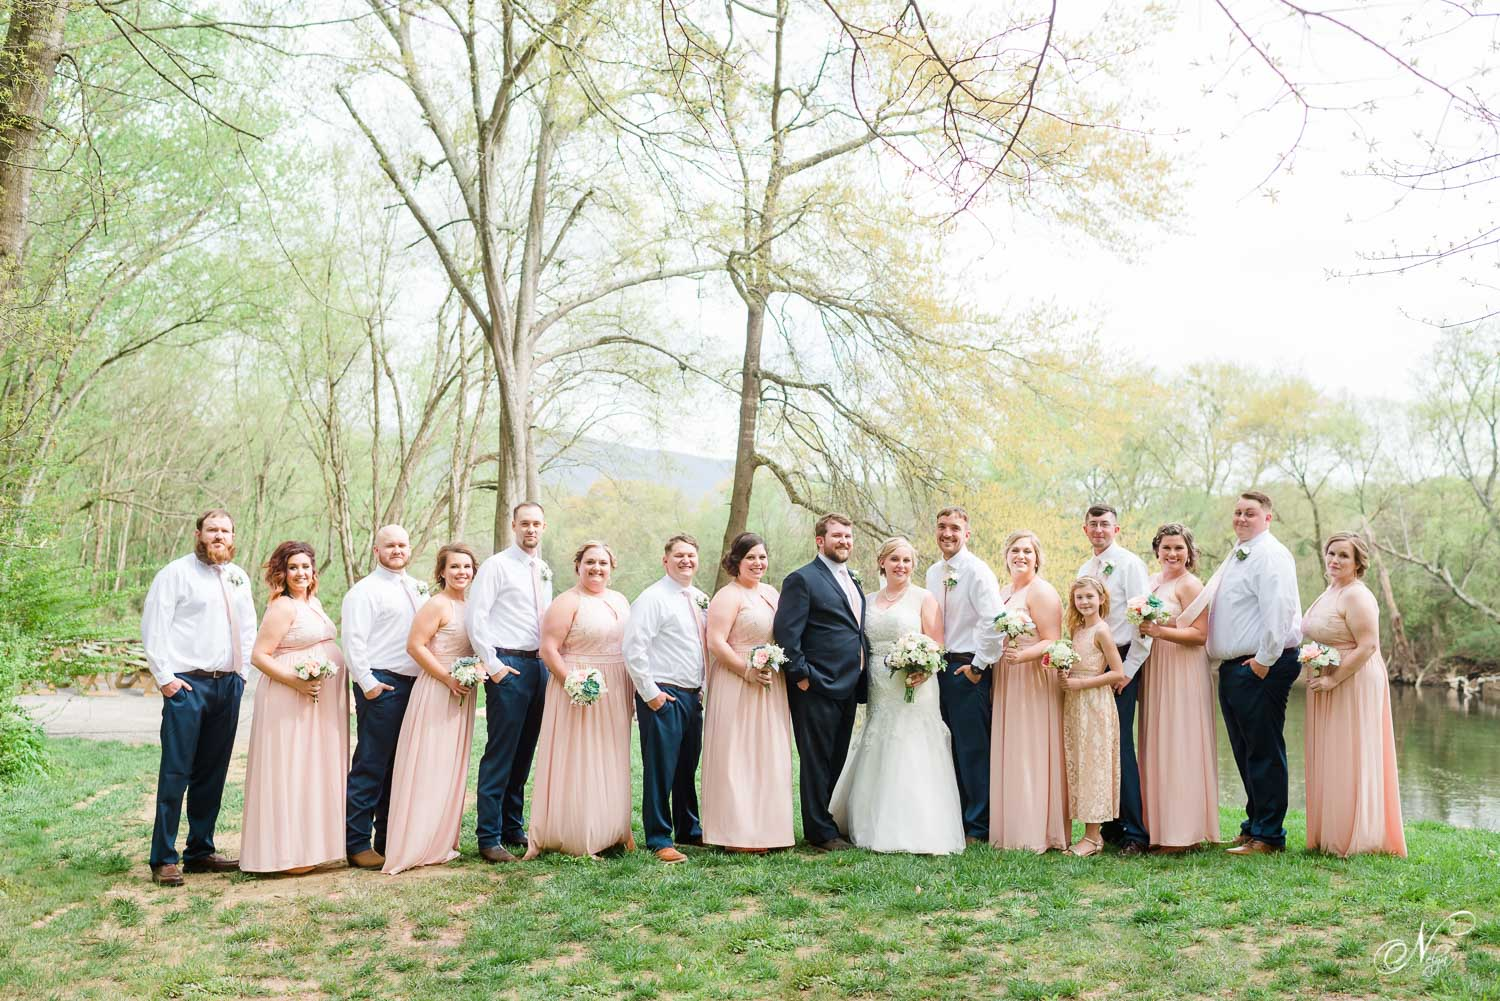 blush and navy wedding party in front of the riverside ceremony area at Hiwassee River weddings venue